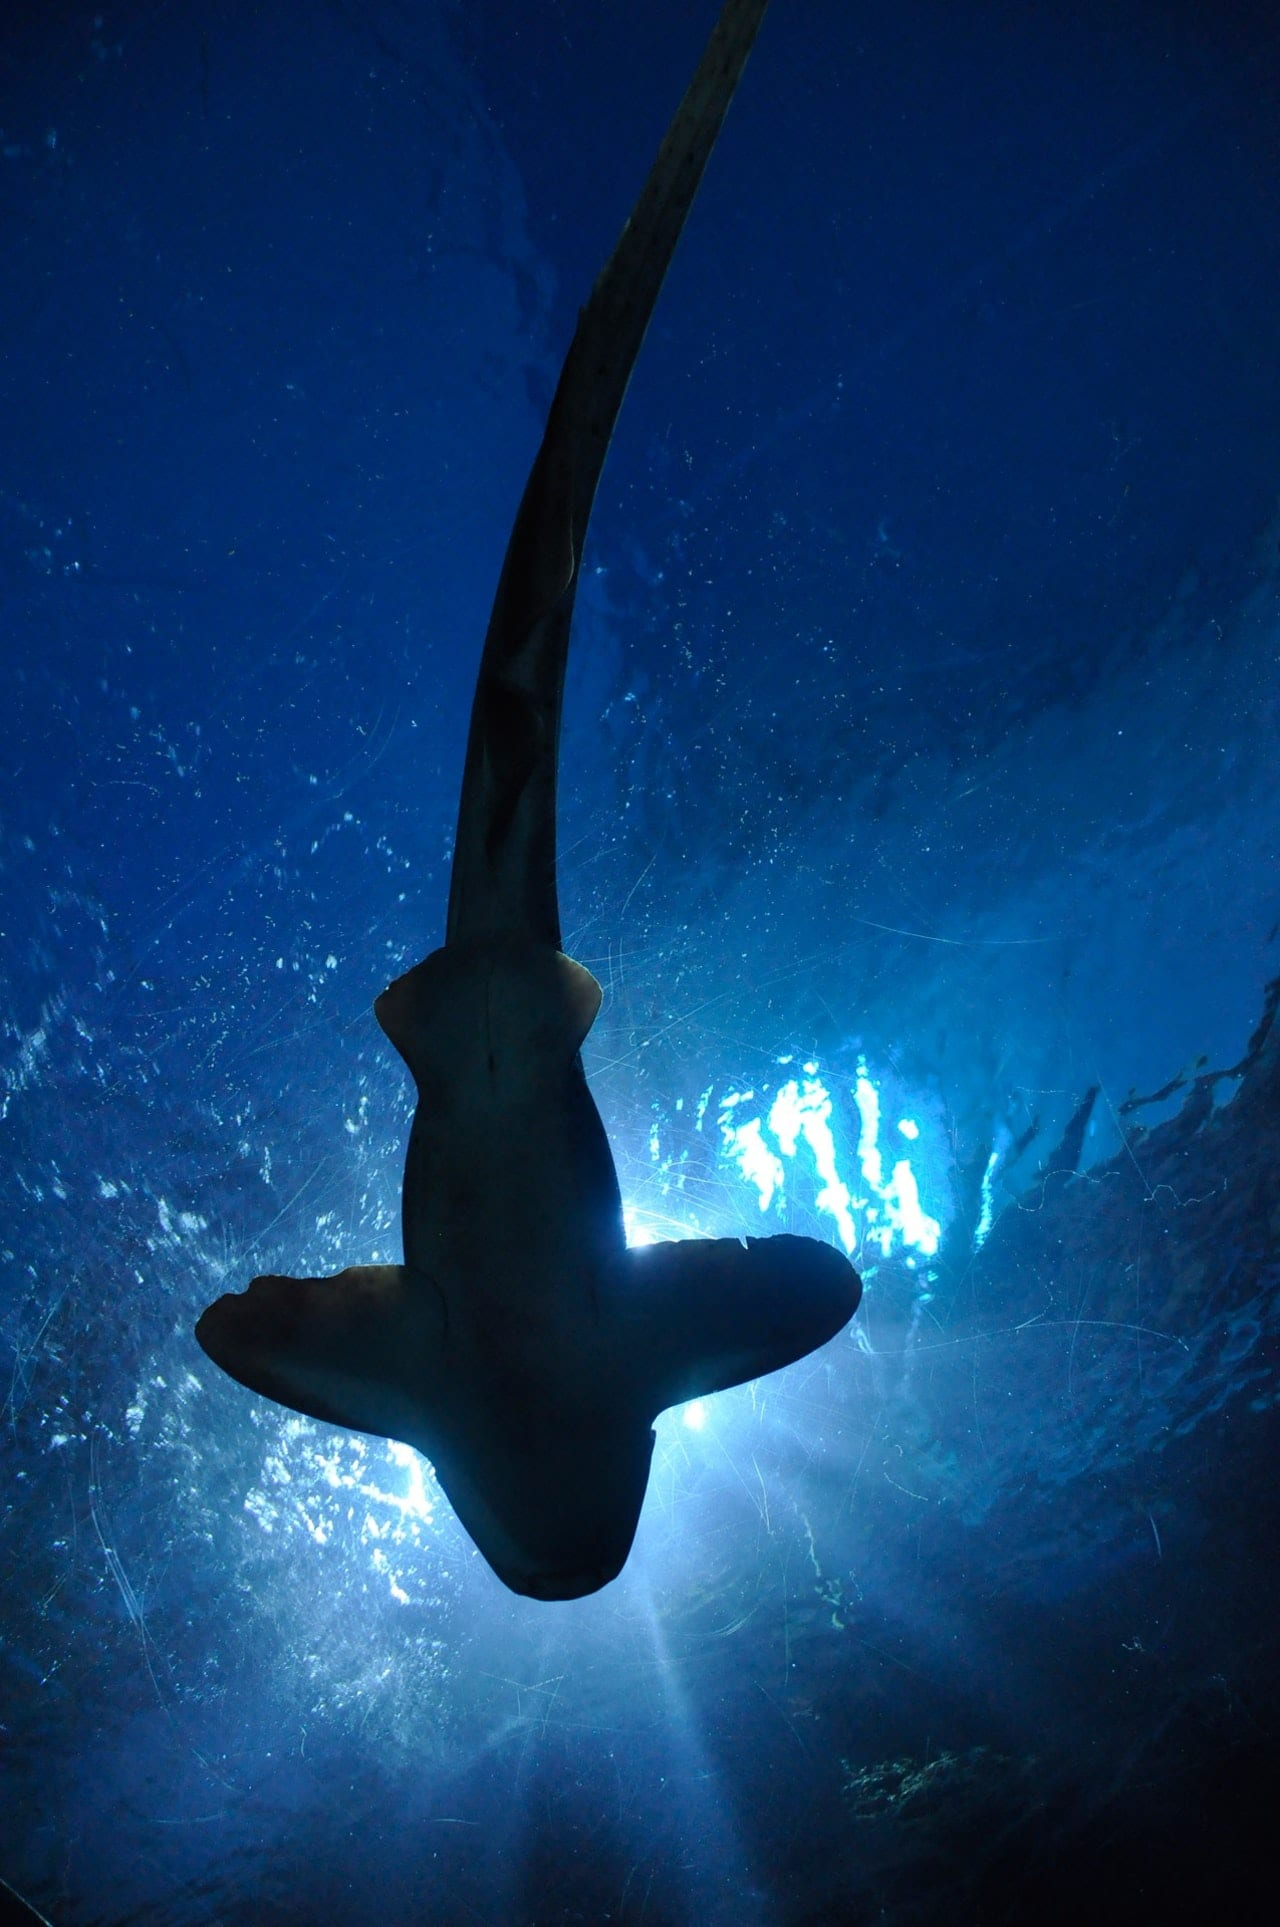 Shark Speak Can You Tell Me About Your Experience With